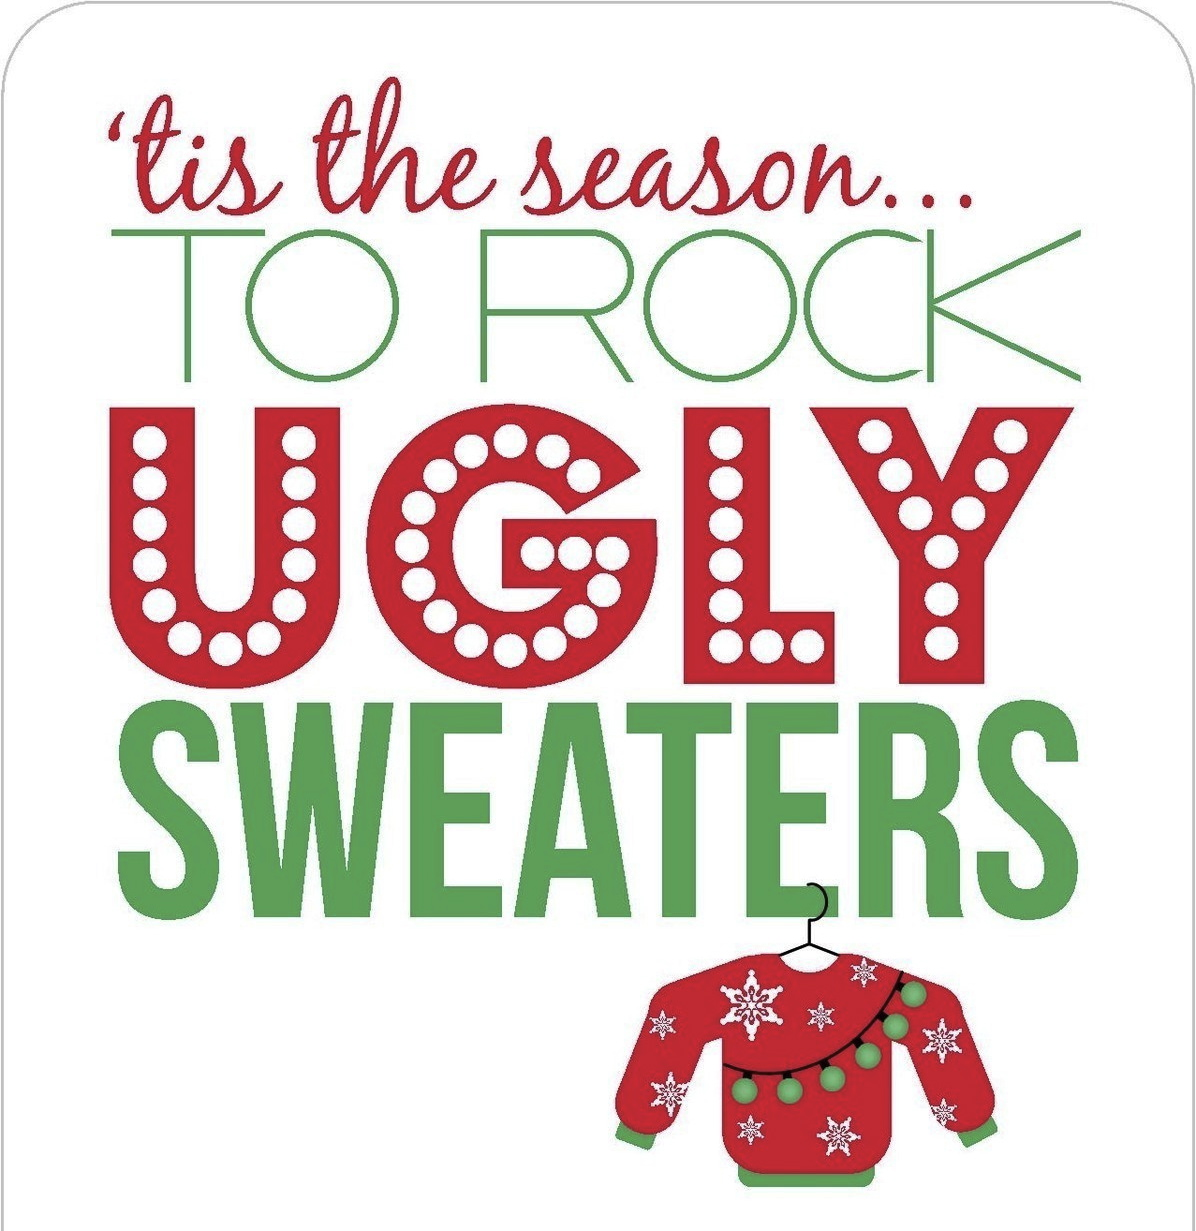 Image result for Ugly Christmas sweater clipart